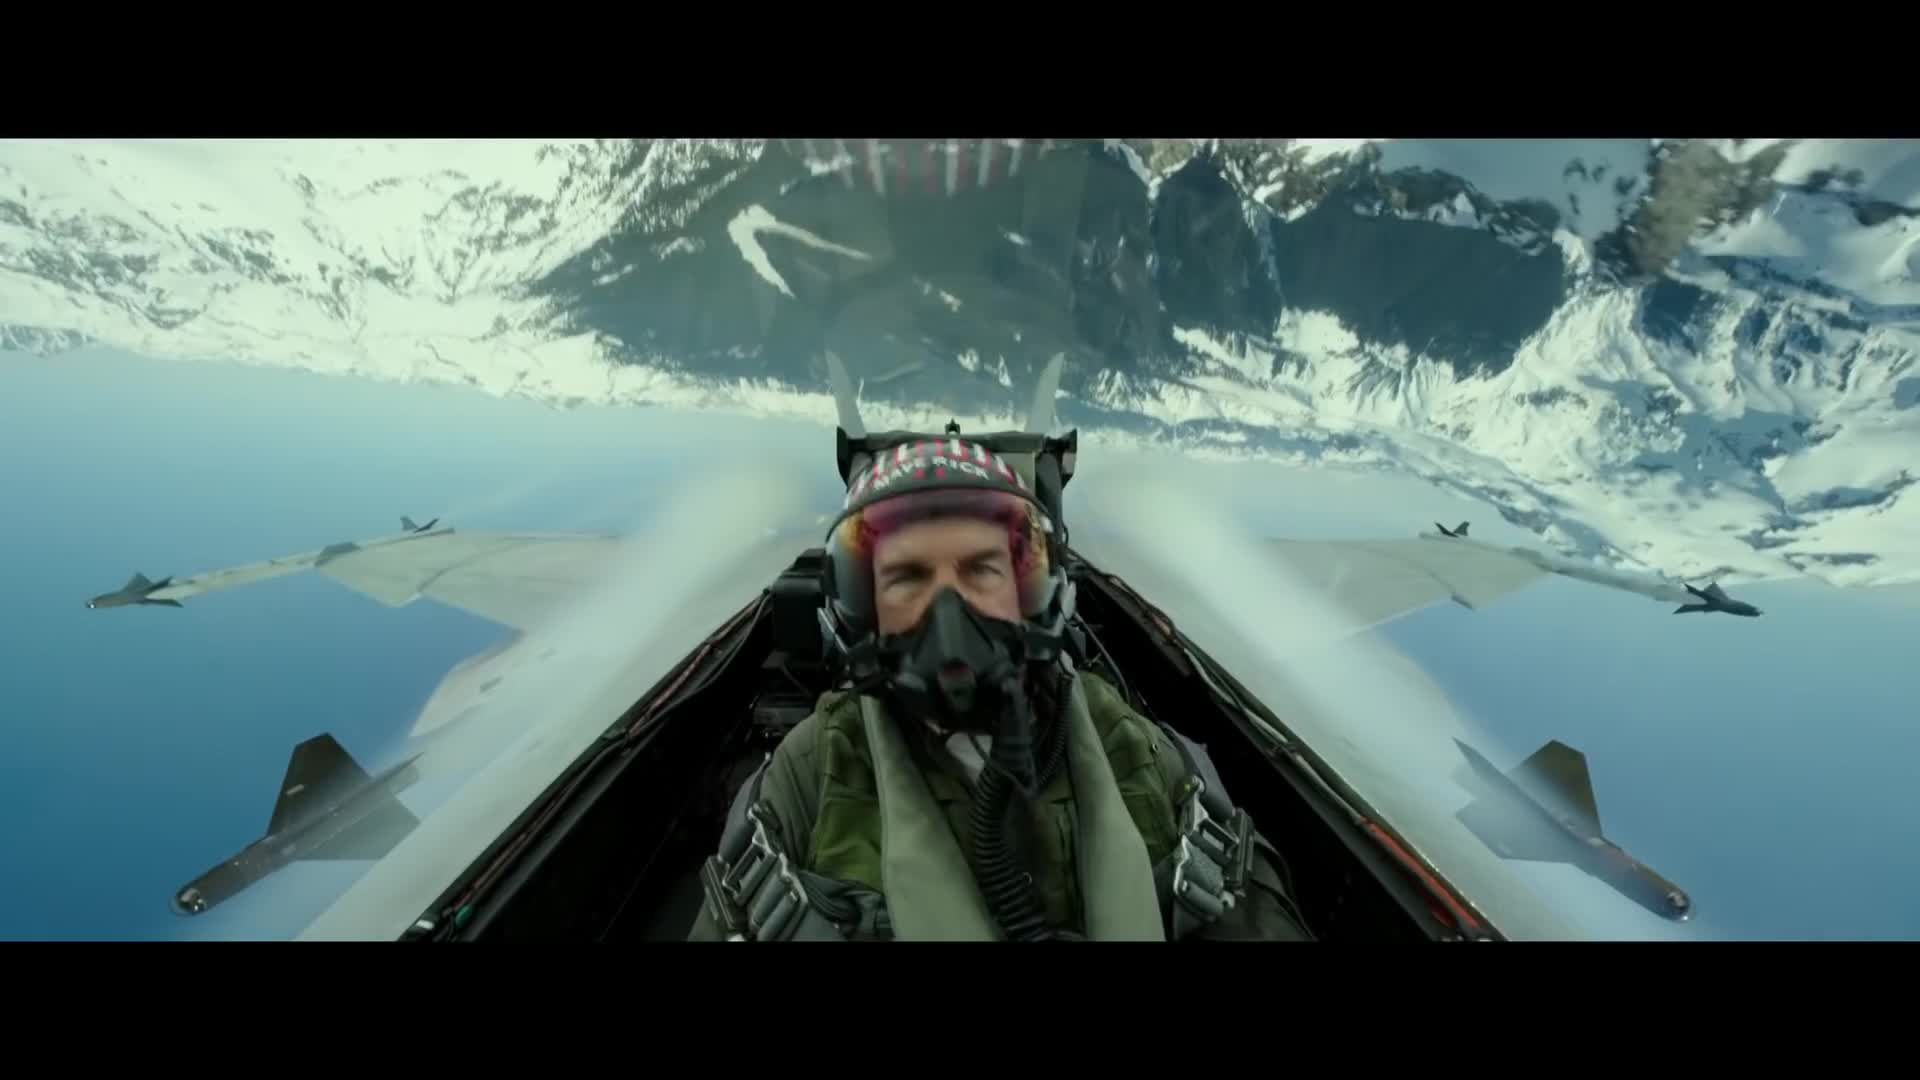 Trailer, Kino, Kinofilm, Super Bowl, Super Bowl 2020, Tom Cruise, Top Gun, Top Gun Maverick